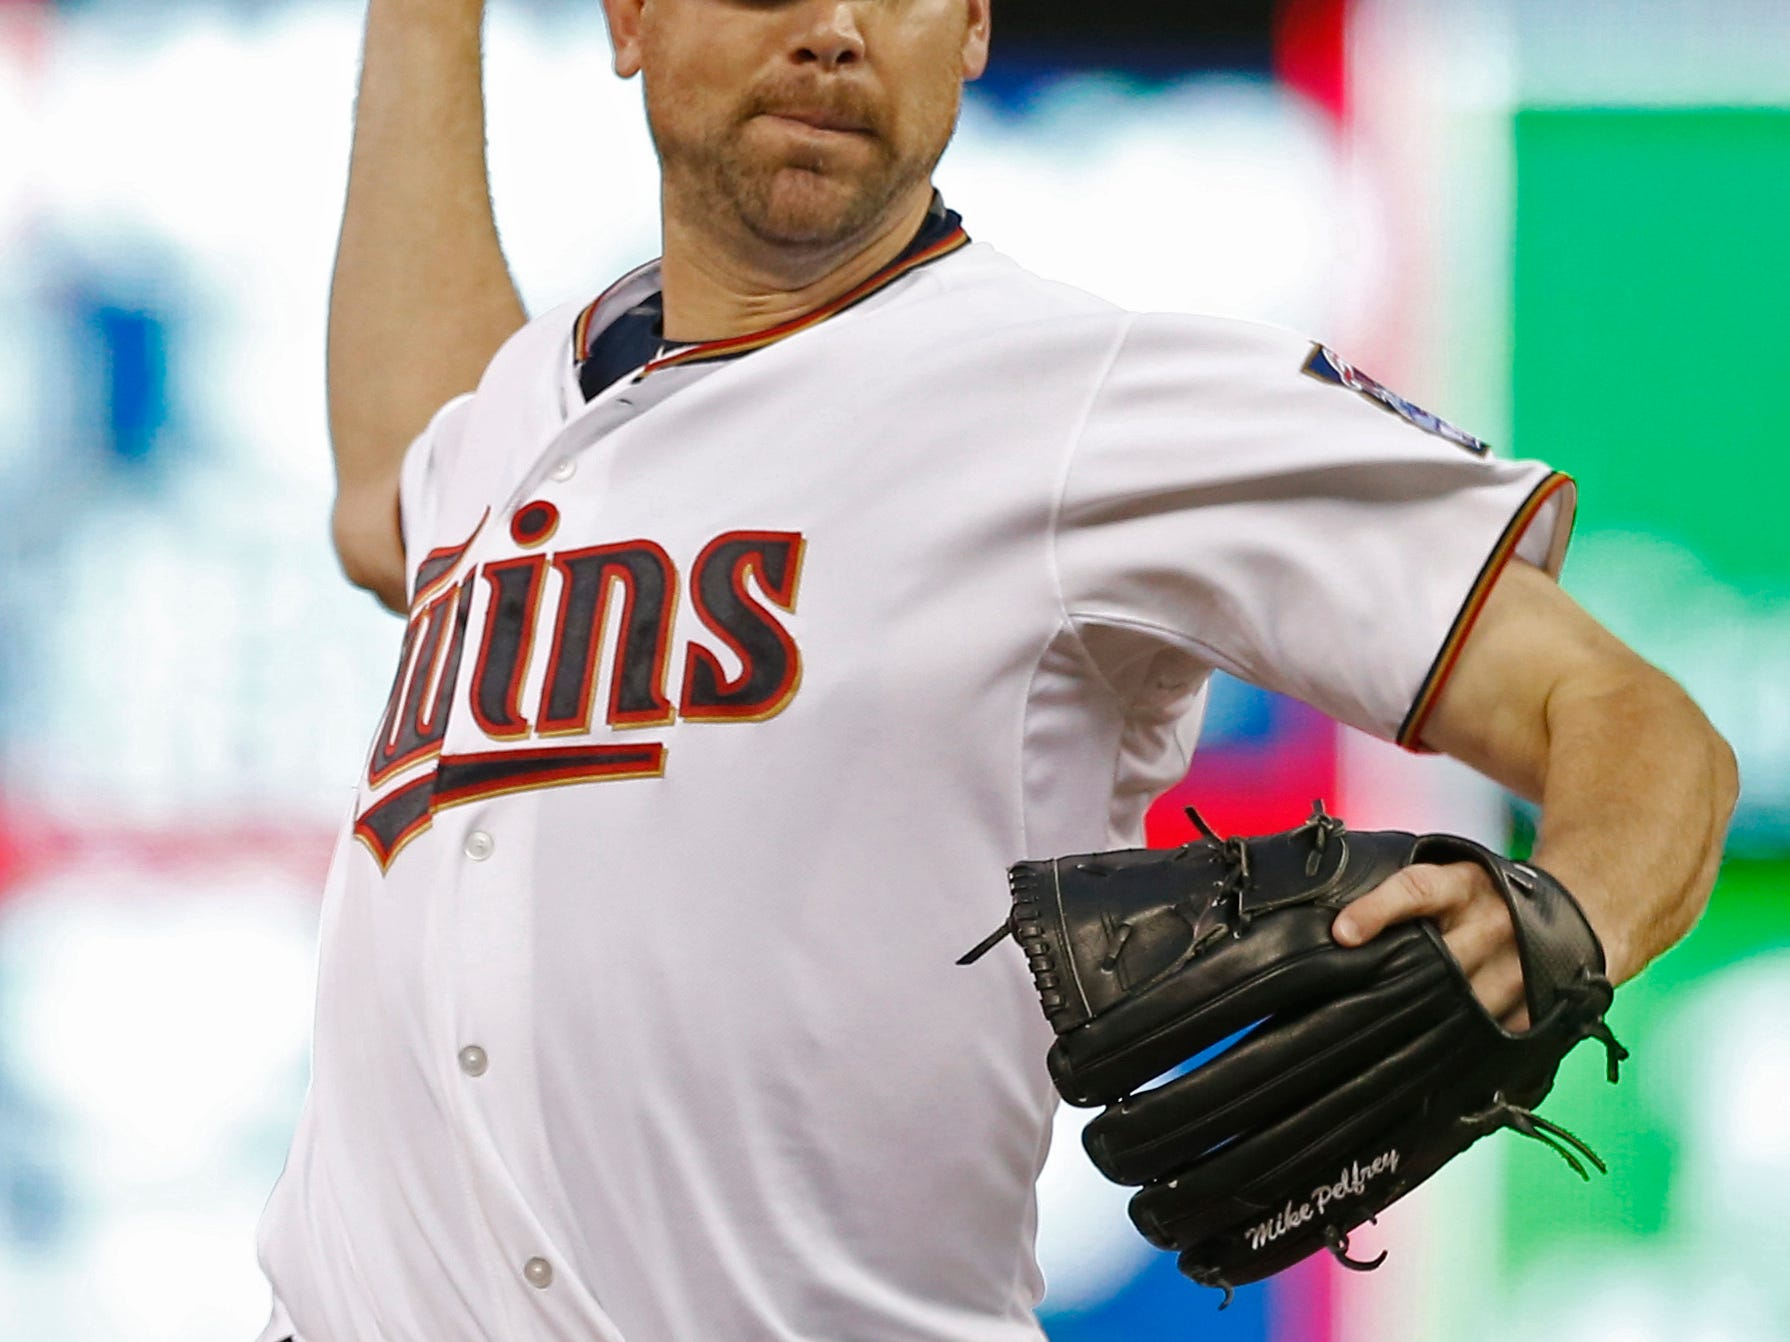 Minnesota Twins pitcher Mike Pelfrey throws against the Detroit Tigers in the fourth inning of a baseball game, Tuesday, April 28, 2015, in Minneapolis. (AP Photo/Jim Mone)